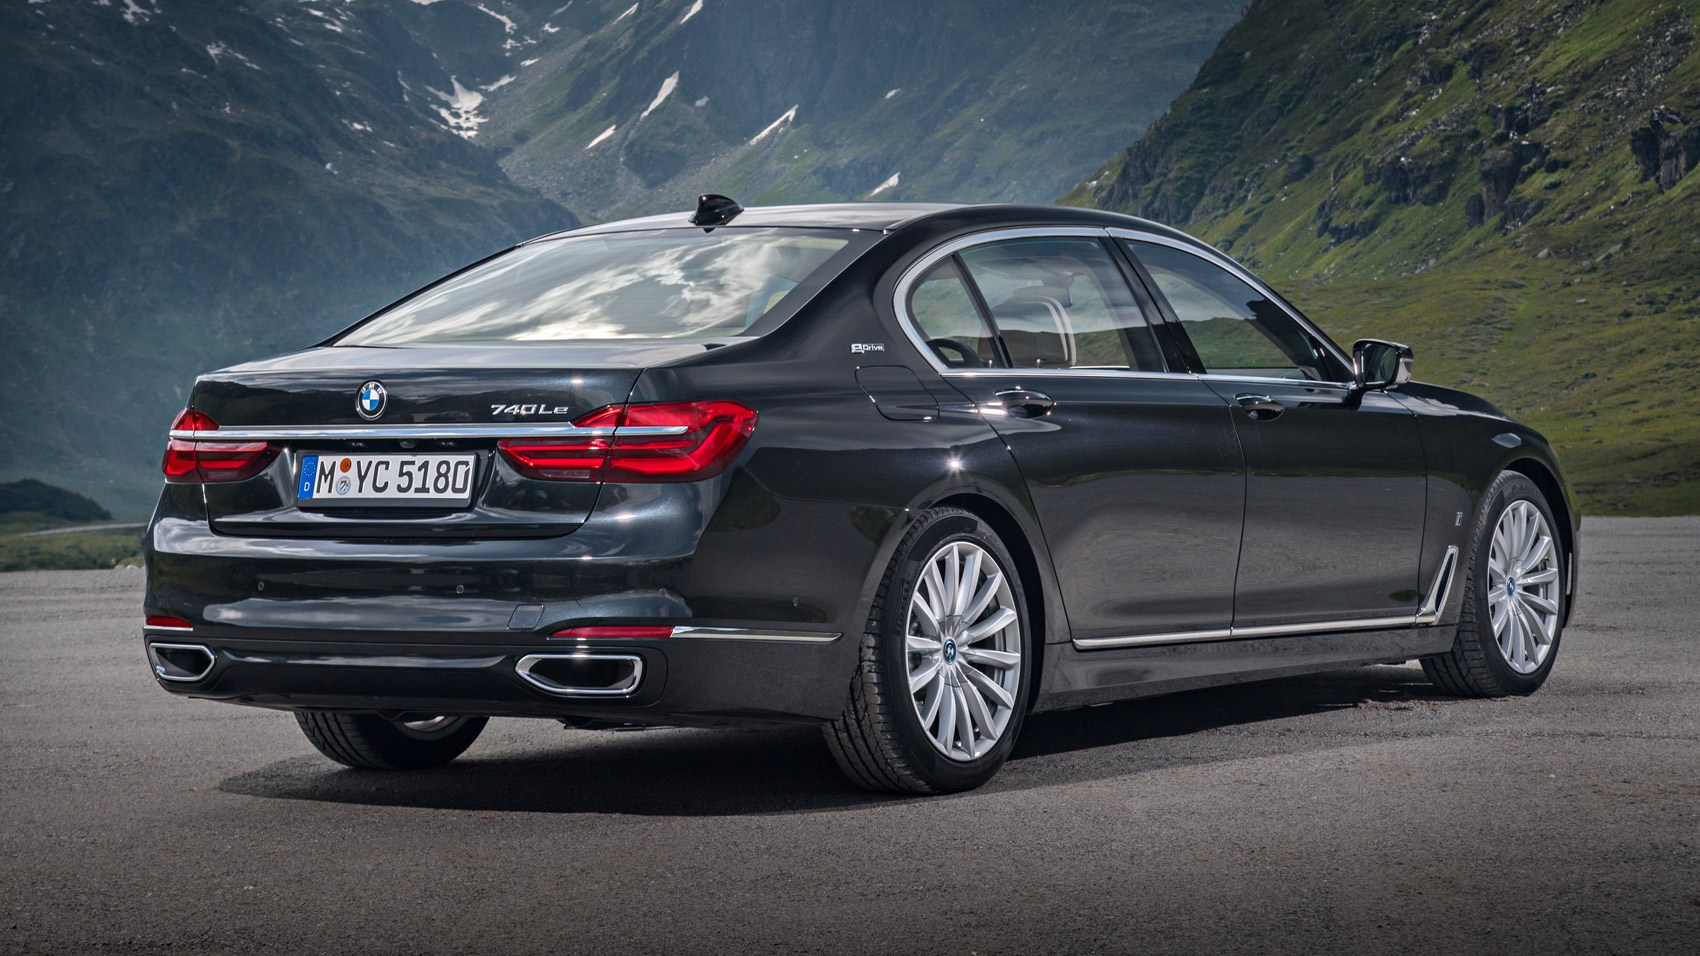 BMW 7series 740Le xDrive iPerformance 2016 review by CAR Magazine